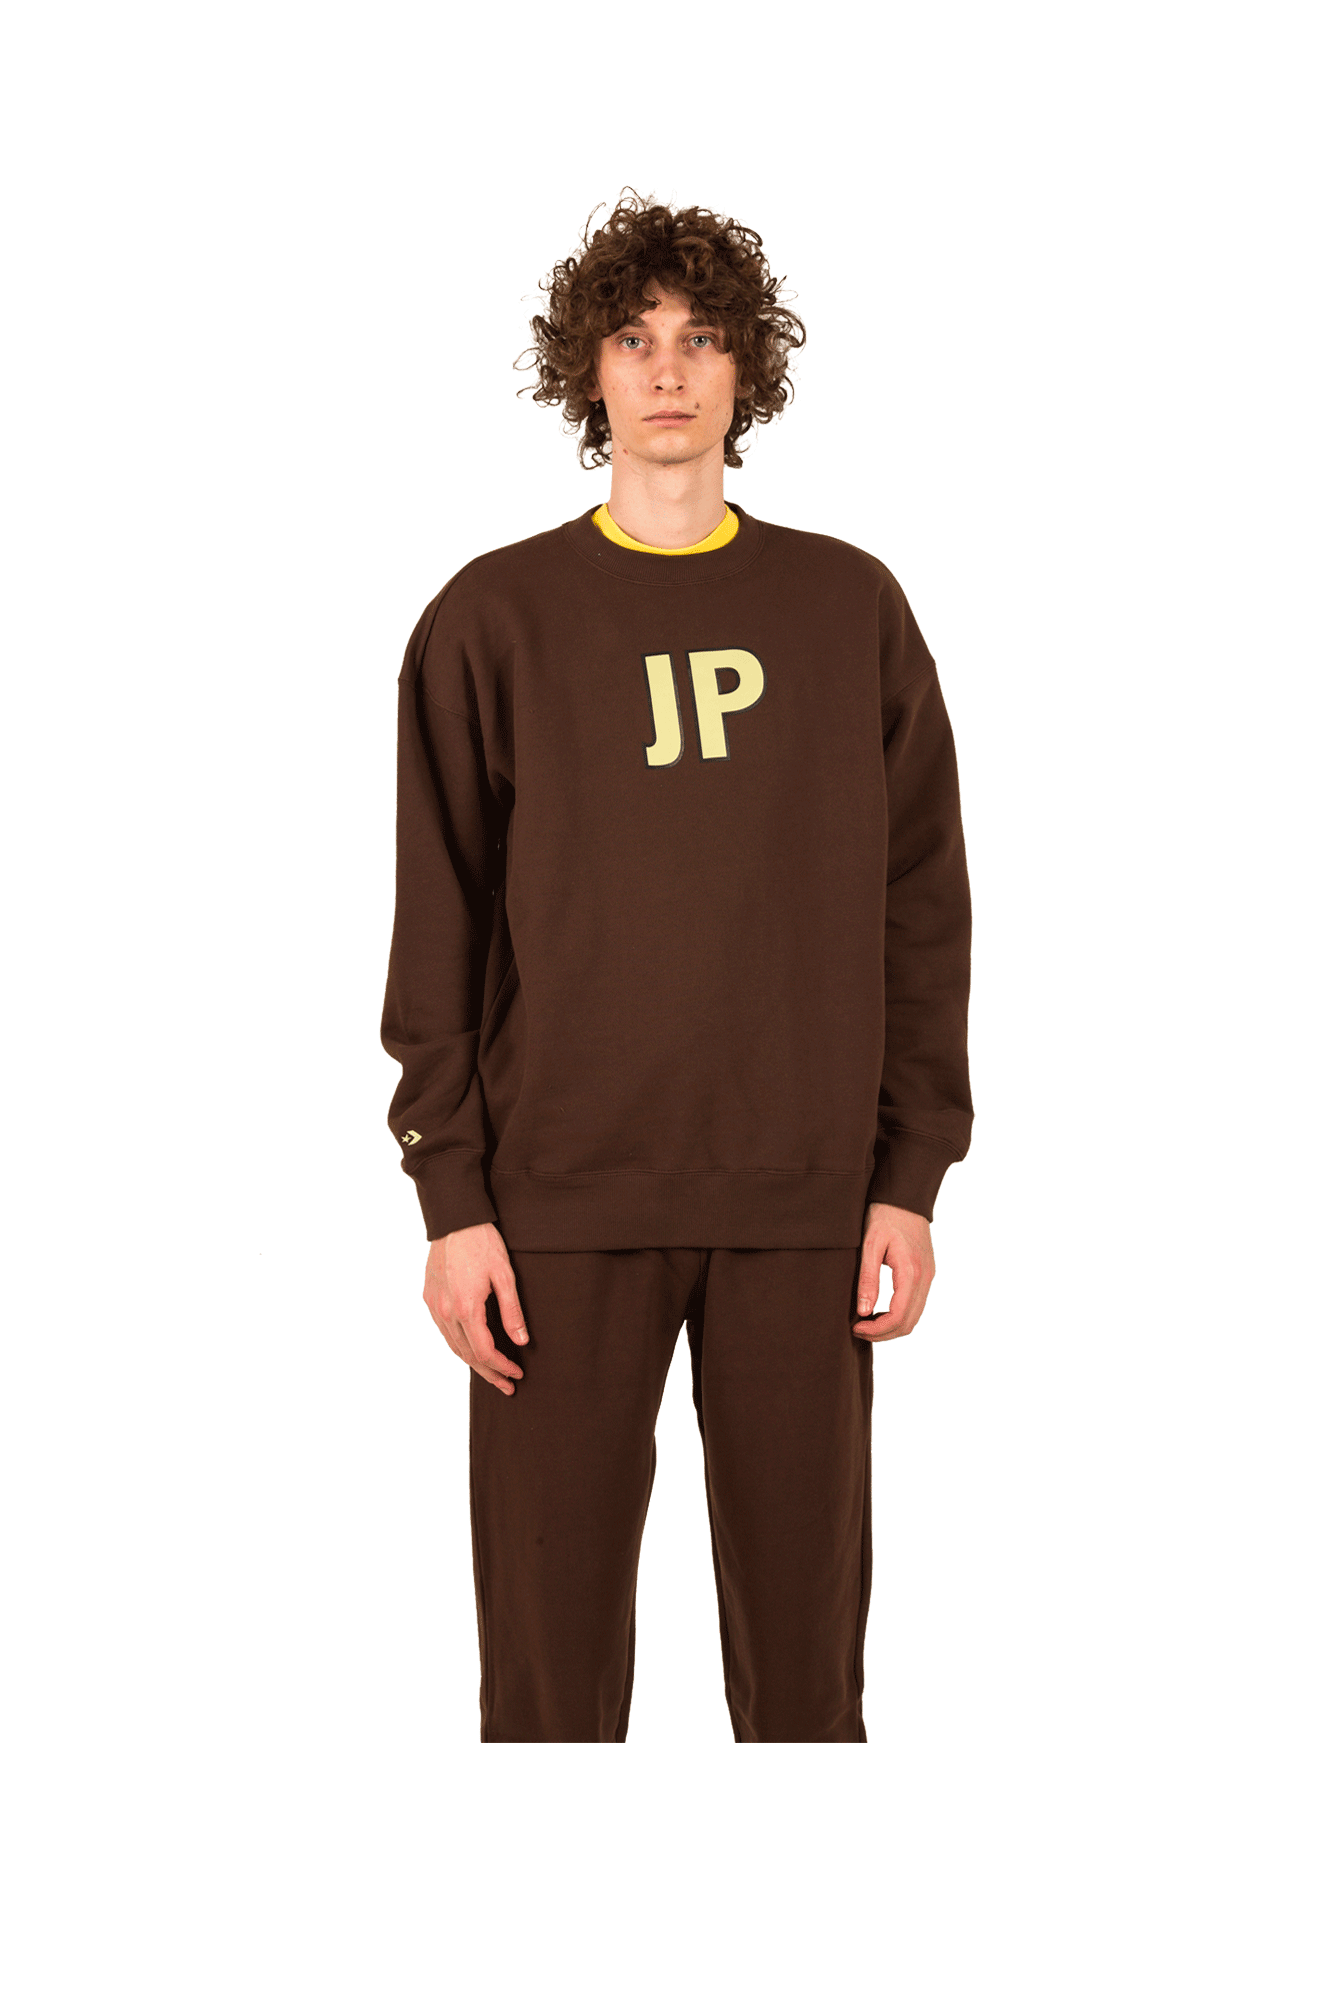 Converse Sweaters Crew Sweatshirt X ASAP NAST Brown 10017741#A02#267#L - One Block Down